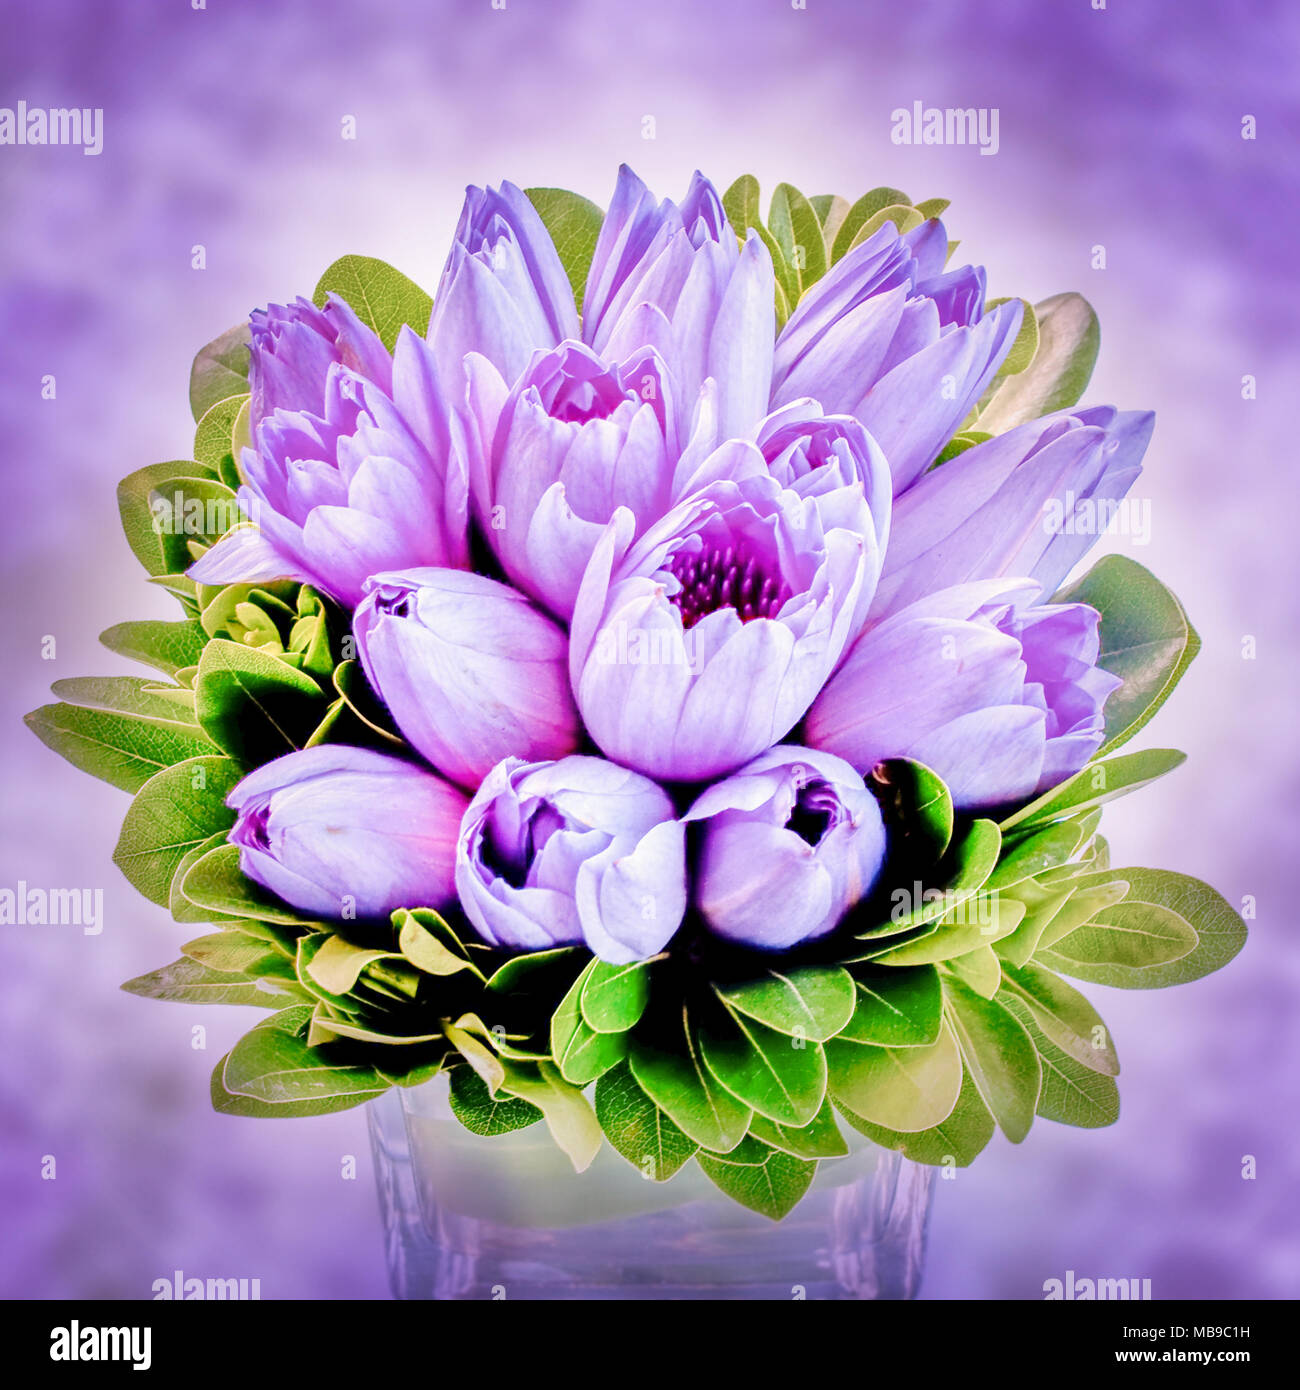 Purple Lotus Flower Bouquet In A Vase View From Above Stock Photo